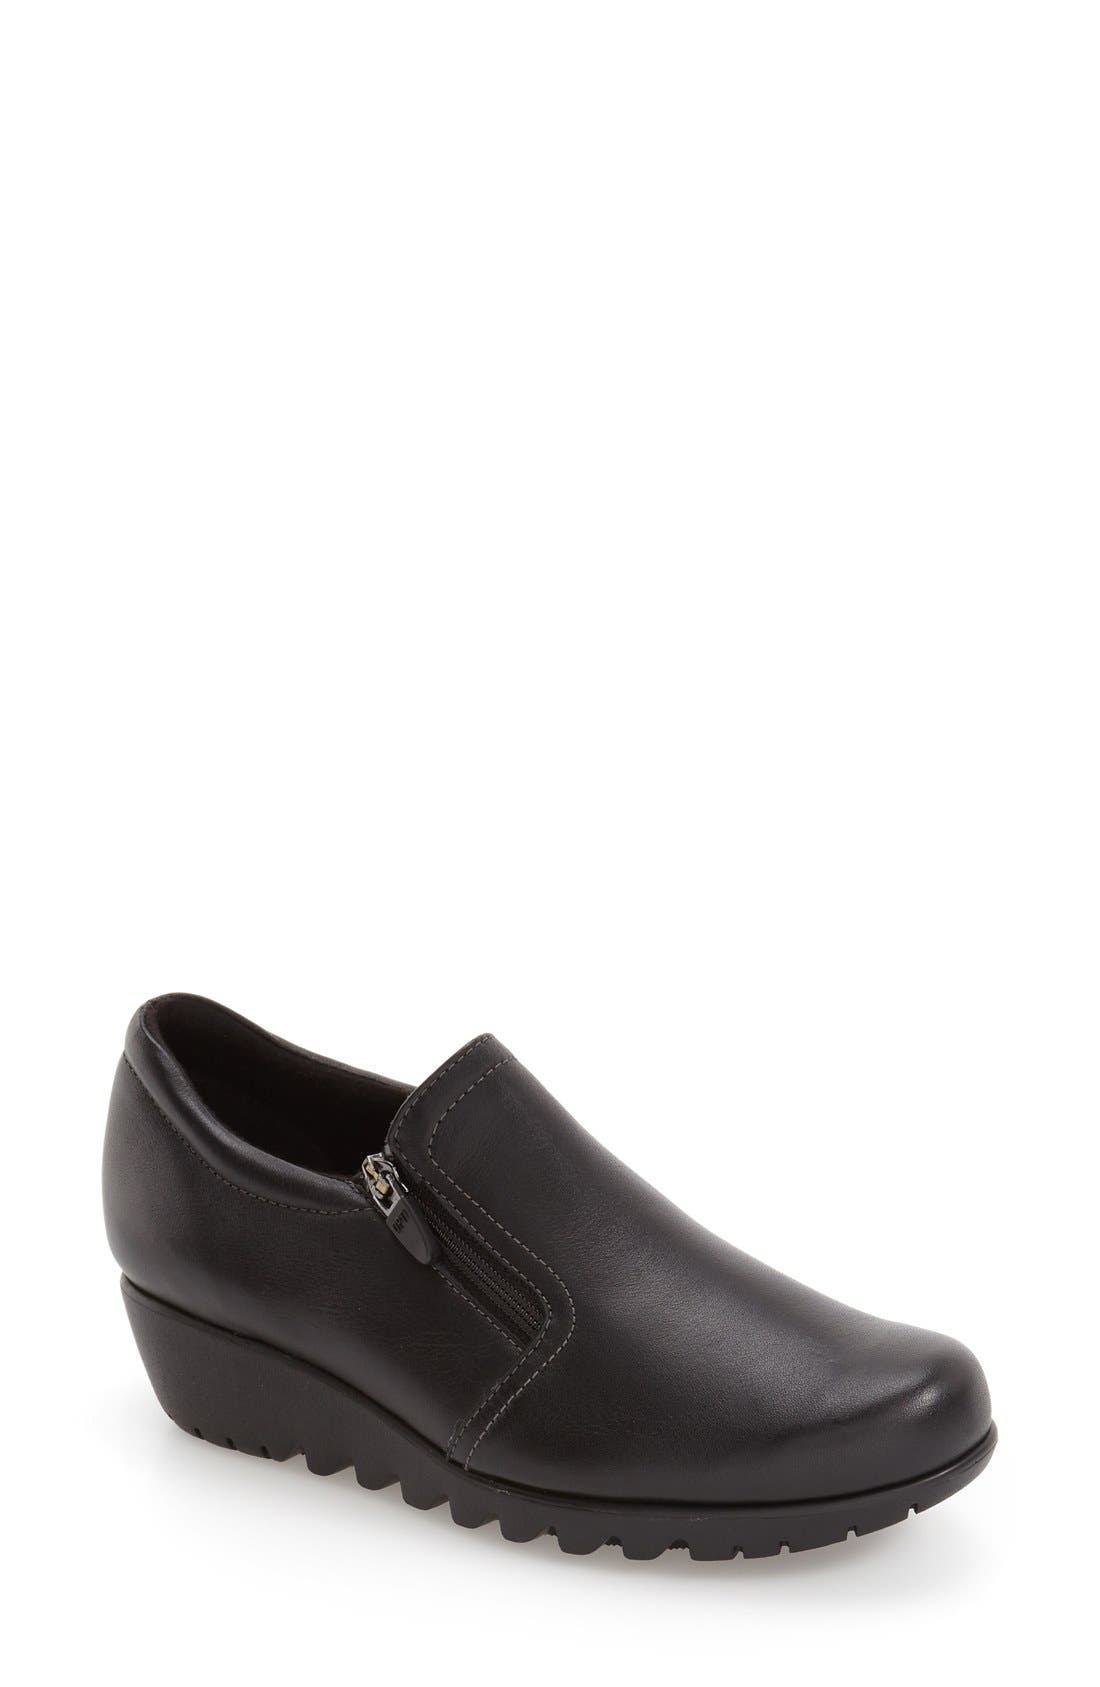 MUNRO Napoli Zip Bootie, Main, color, BLACK LEATHER